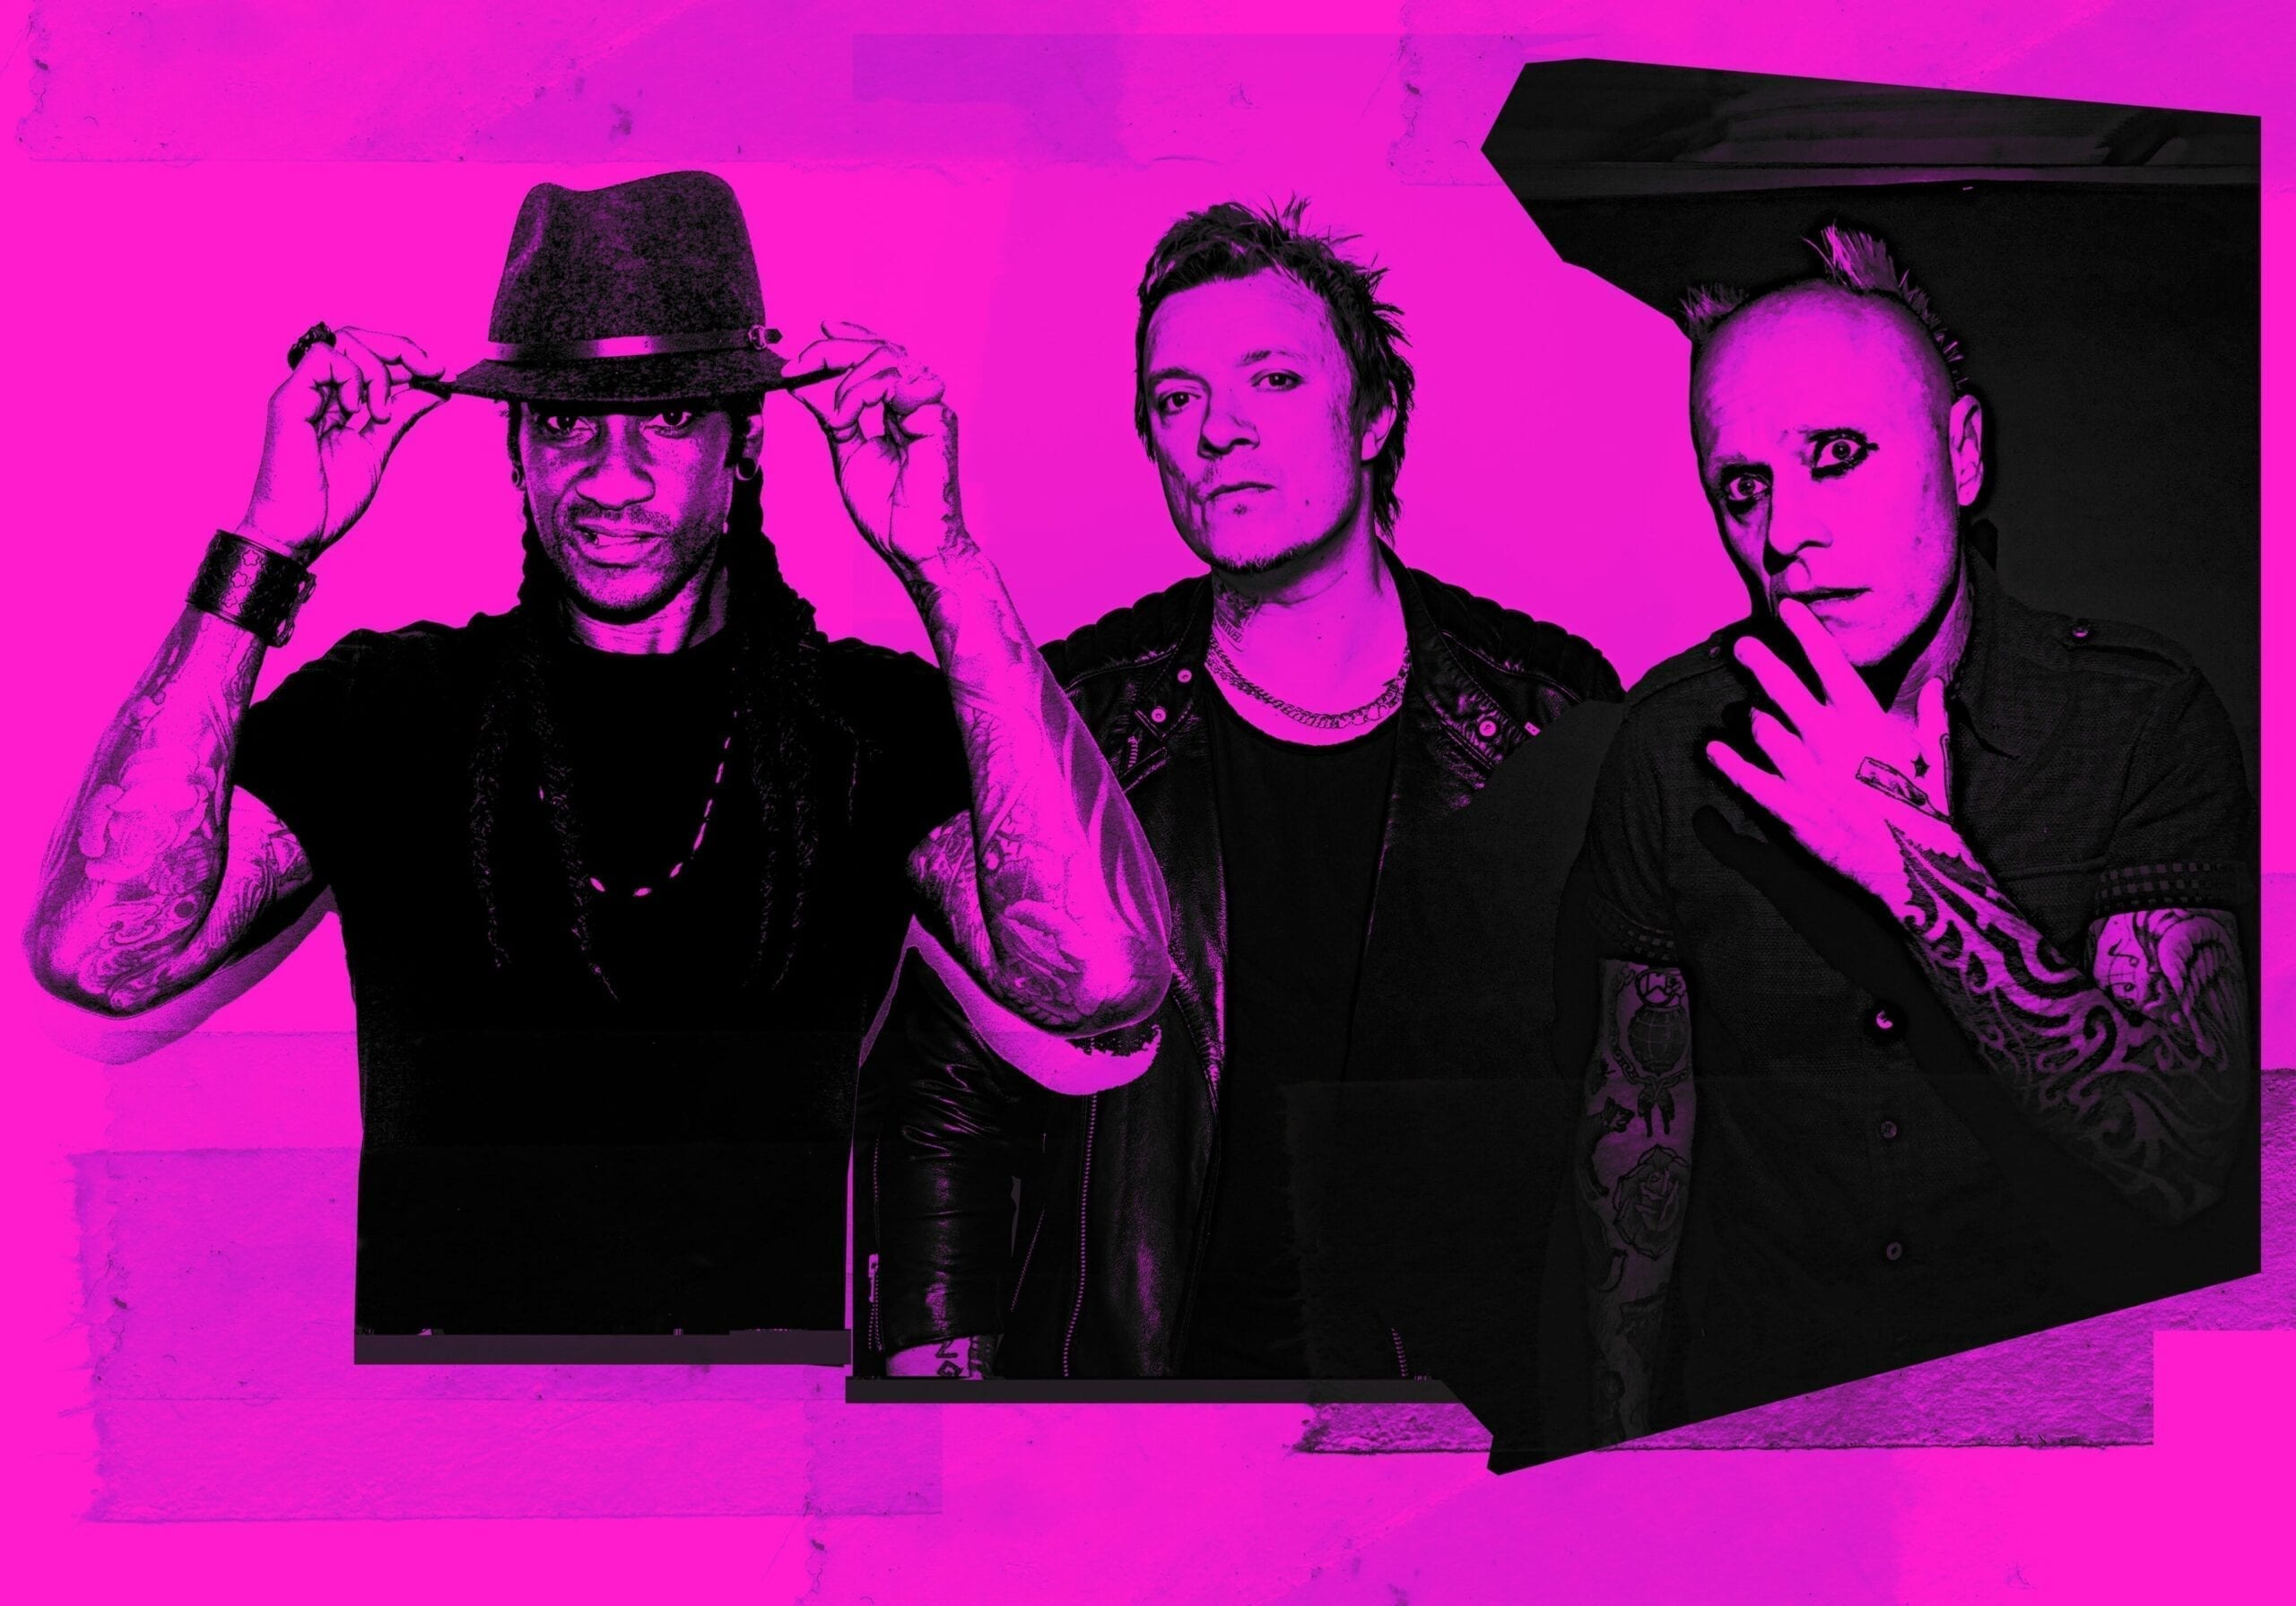 The Prodigy New album - 'No Tourists' - released November 2nd